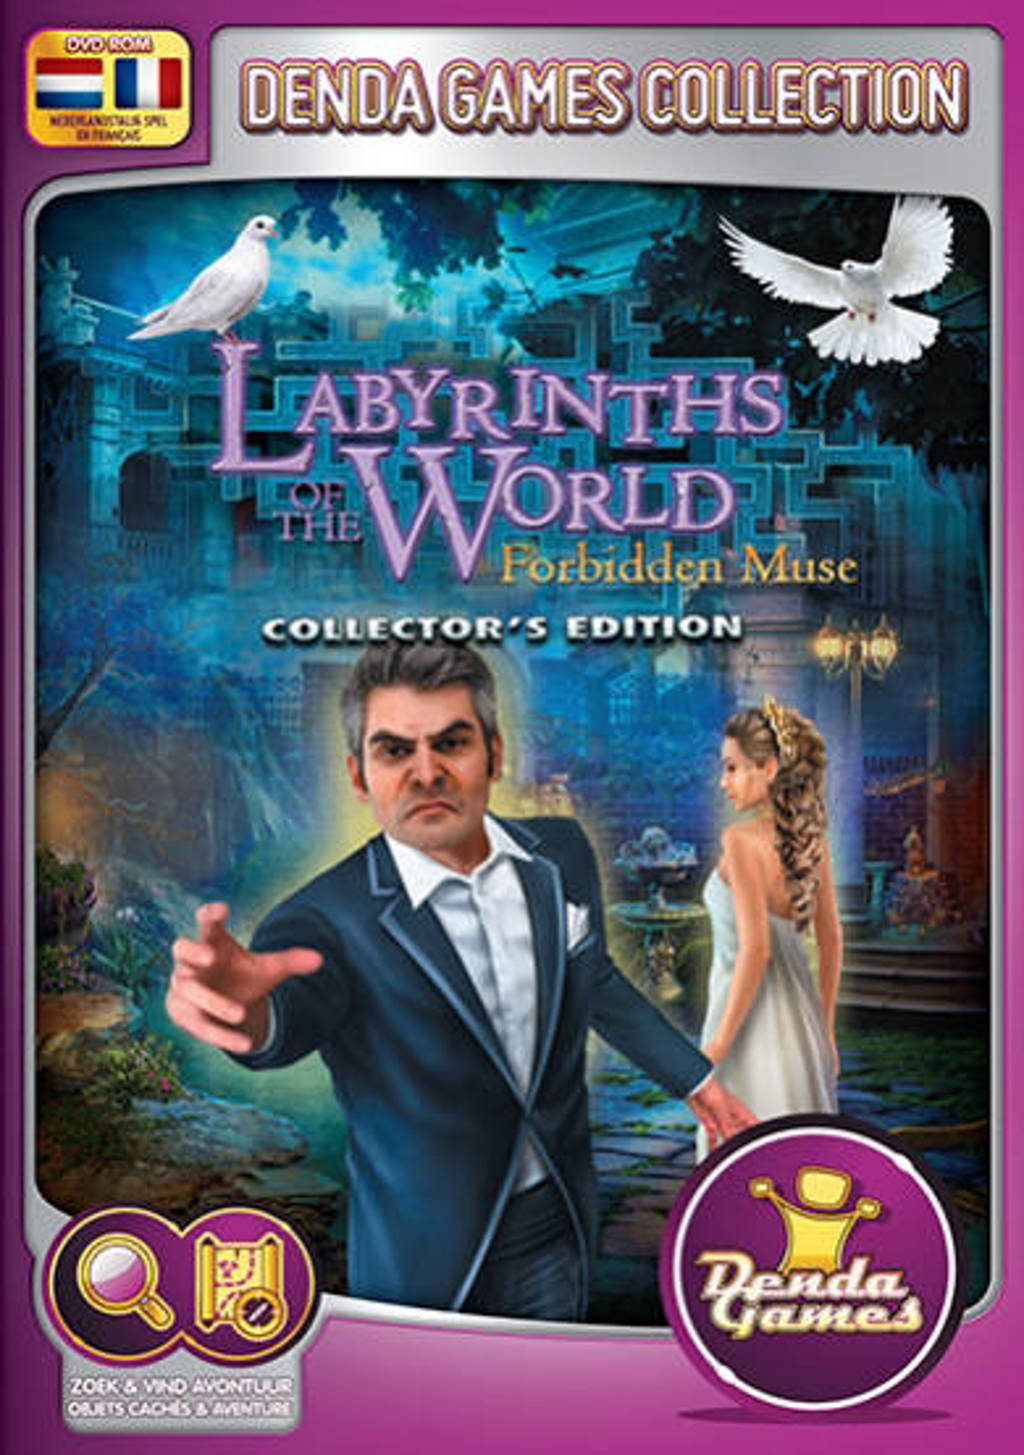 Labyrinths of the world - Forbidden muse (Collectors edition) (PC)